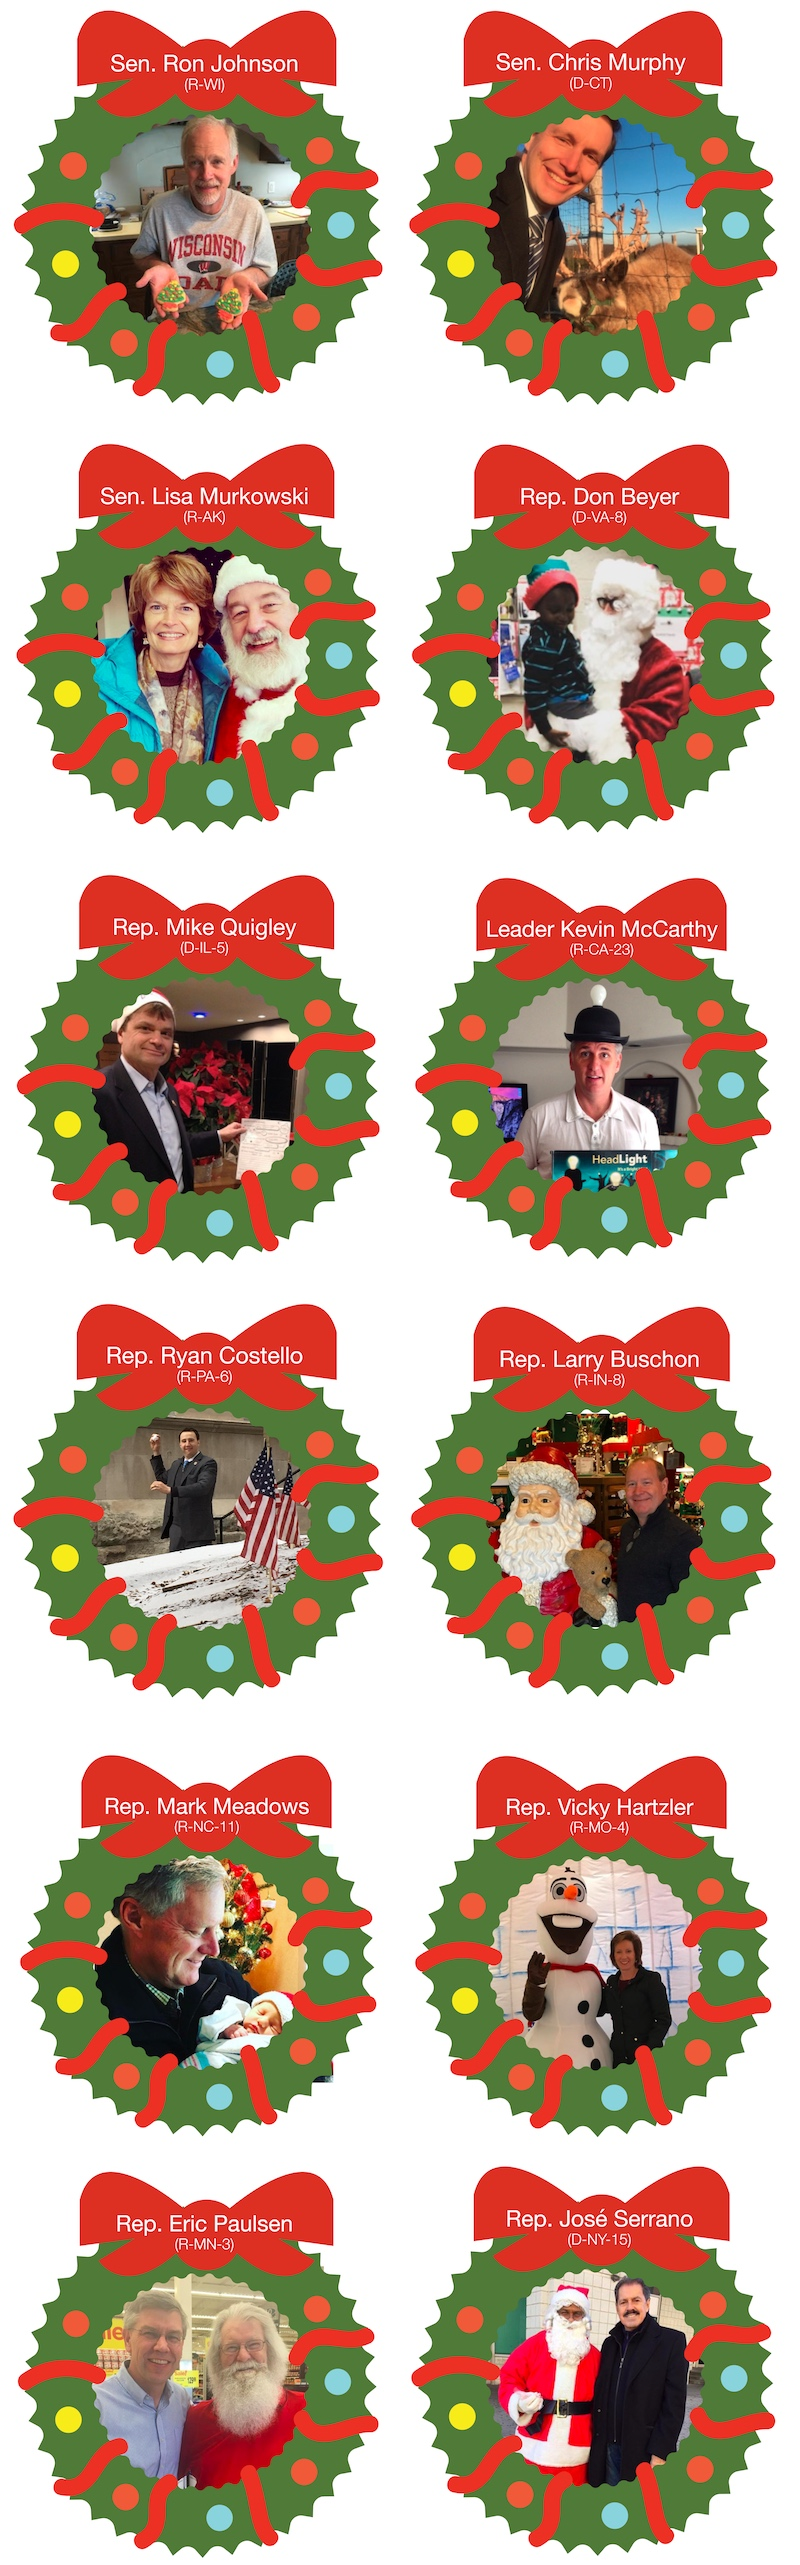 Quorum's gallery of congressional holiday photos.